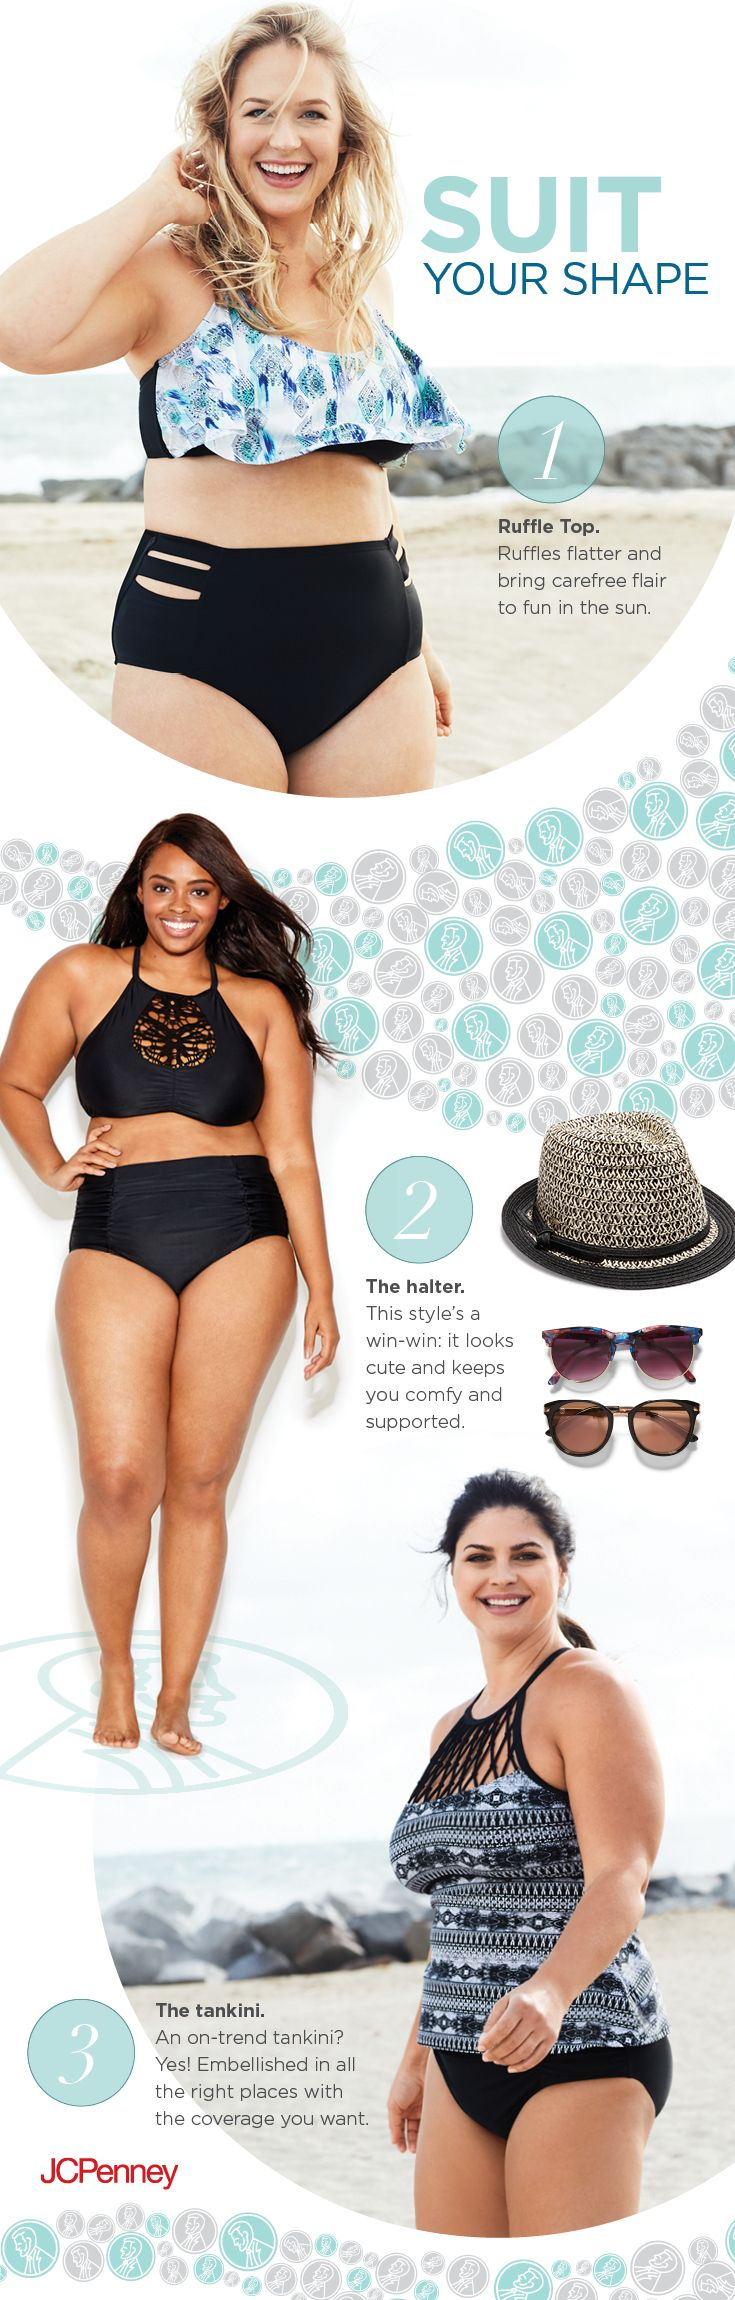 It's time to ditch the cold and bring the heat! Find the plus size swimsuit perfect for you—from a one-piece with smoothing fabric or a tankini that's flowy or fitted, check swimwear off your list and get ready for summer fun. If you're a bikini girl, stay on trend in low-or-high-waist looks that flatter, or choose an underwire top for natural lift and support. Pick the style that best suits you, grab your sunnies and recline on that poolside lounger.